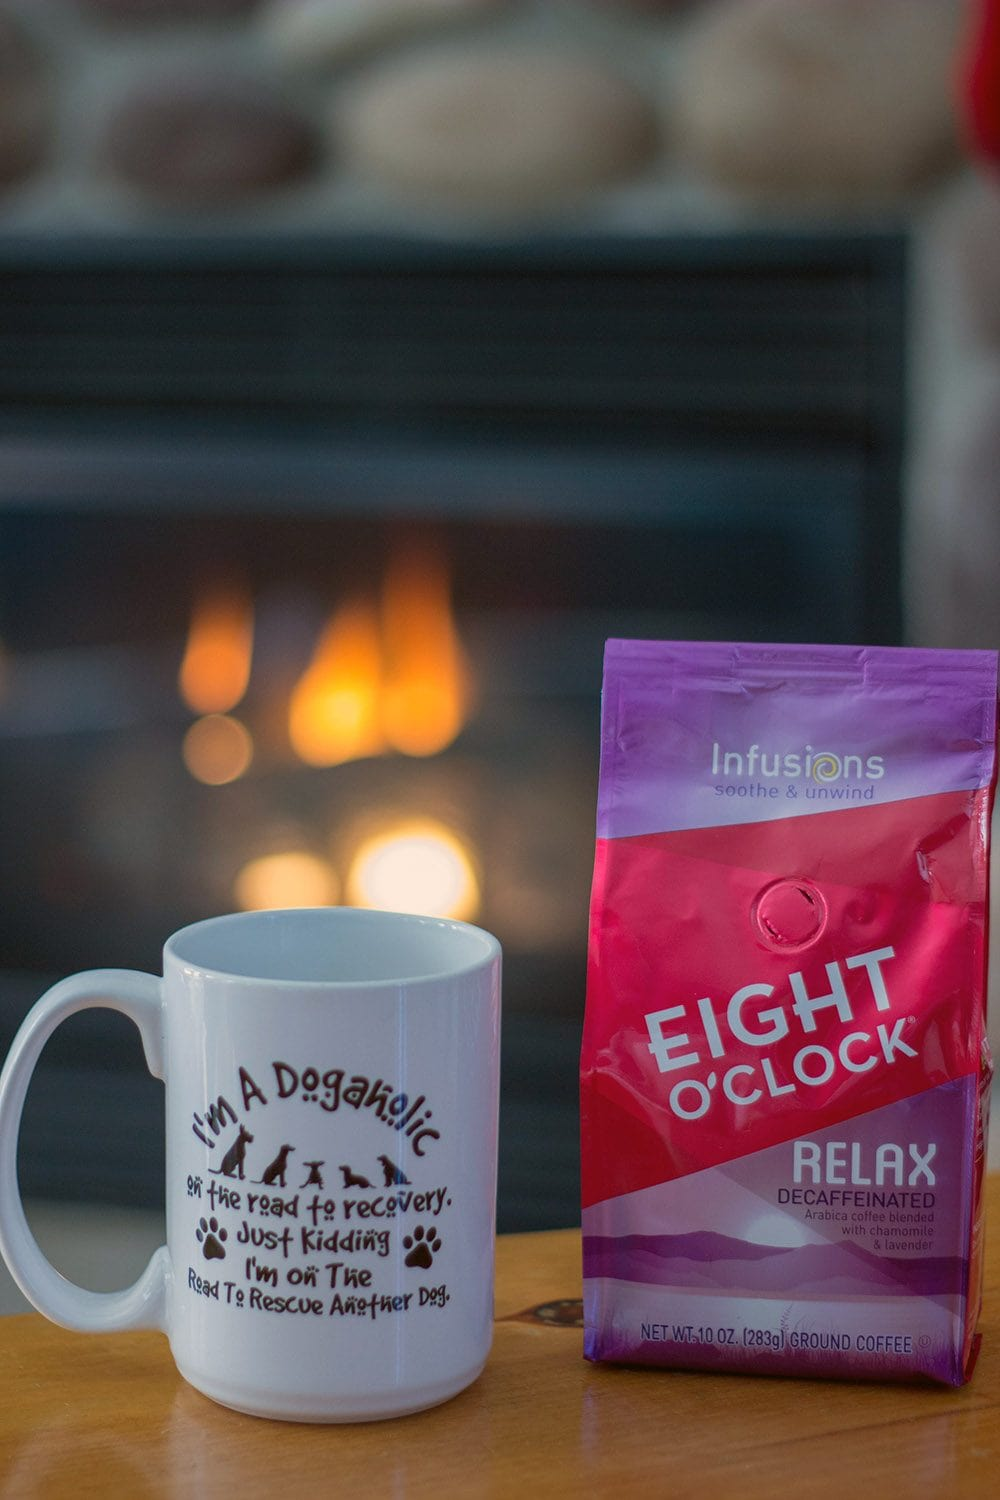 Enjoy Relax Decaffeinated when you want a hot cup of coffee later in the day